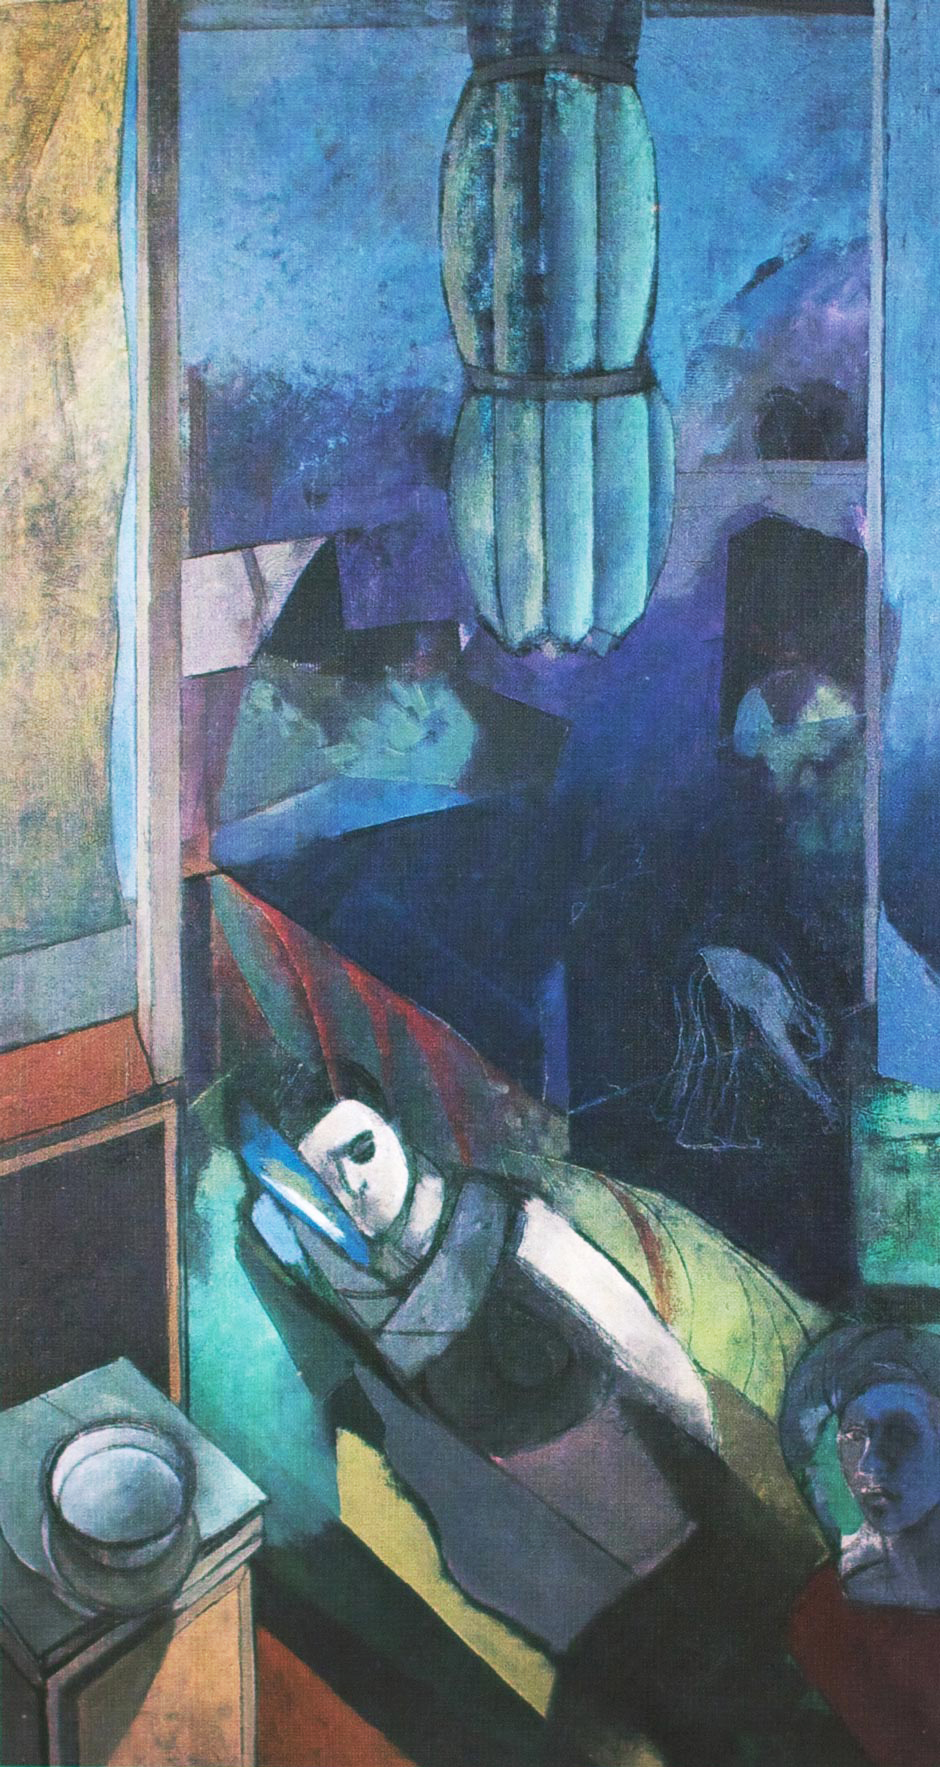 Landskap etter krig, 1978, Oil on canvas, 190 x 100 cm